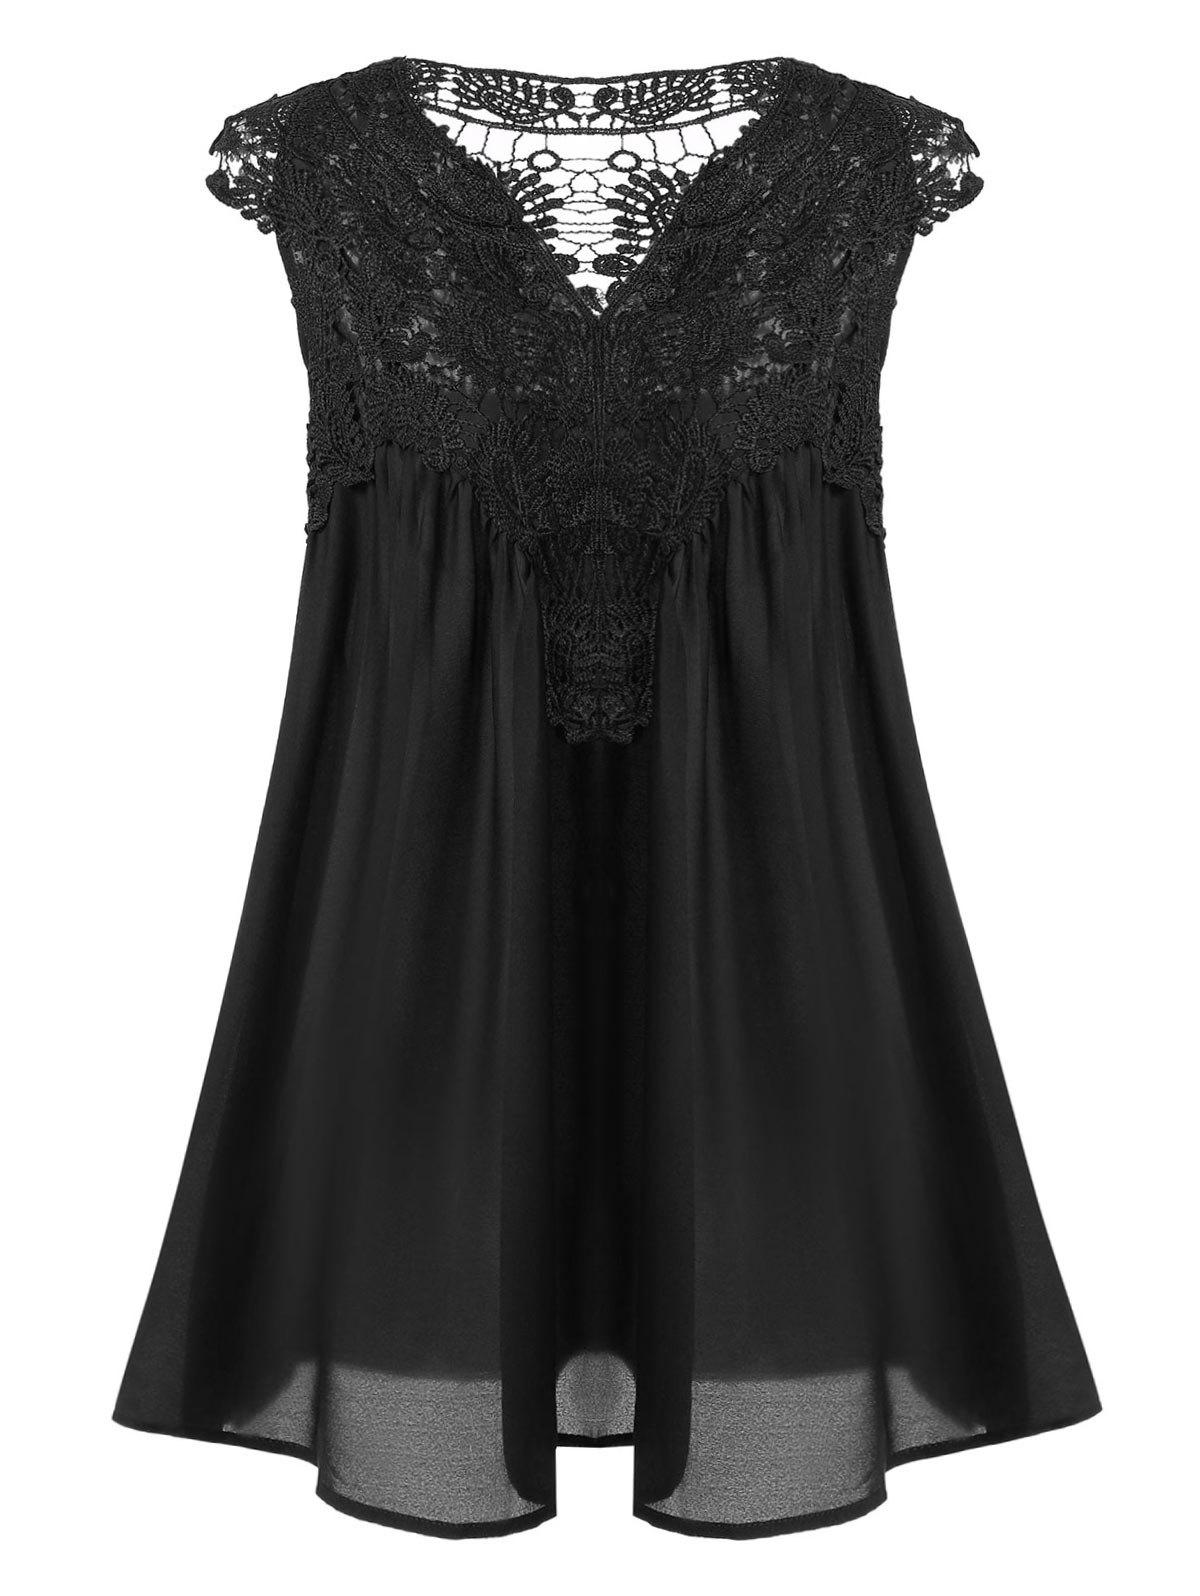 Womens Stylish V-Neck Sleeveless Lace Splicing BlouseWOMEN<br><br>Size: XL; Color: BLACK; Material: Polyester; Shirt Length: Regular; Sleeve Length: Sleeveless; Collar: V-Neck; Style: Casual; Season: Summer; Pattern Type: Patchwork; Weight: 0.2350kg; Package Contents: 1 x Blouse;